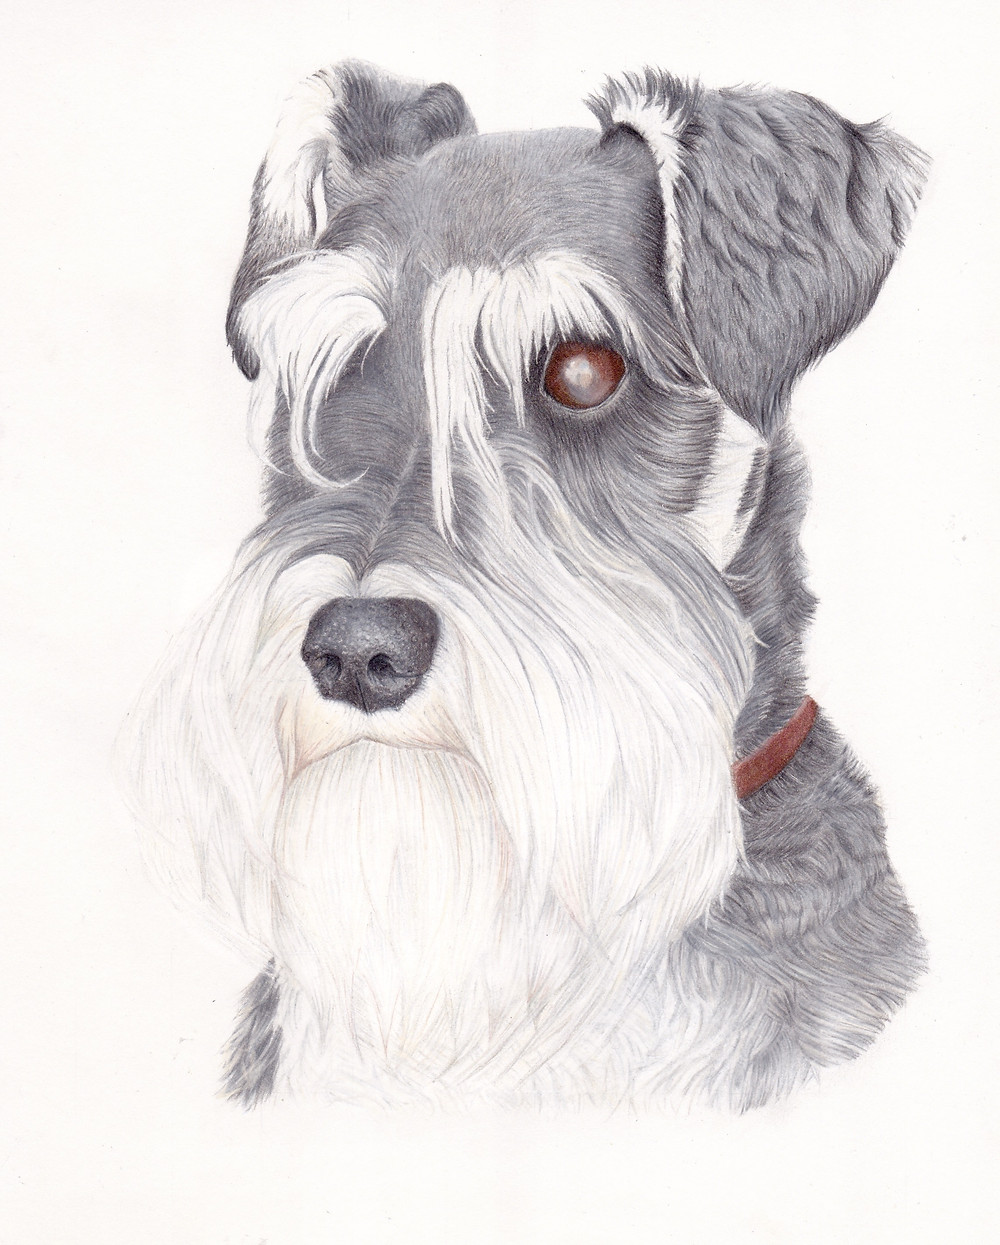 A pet portrait drawing of a Miniature Schnauzer in coloured pencil